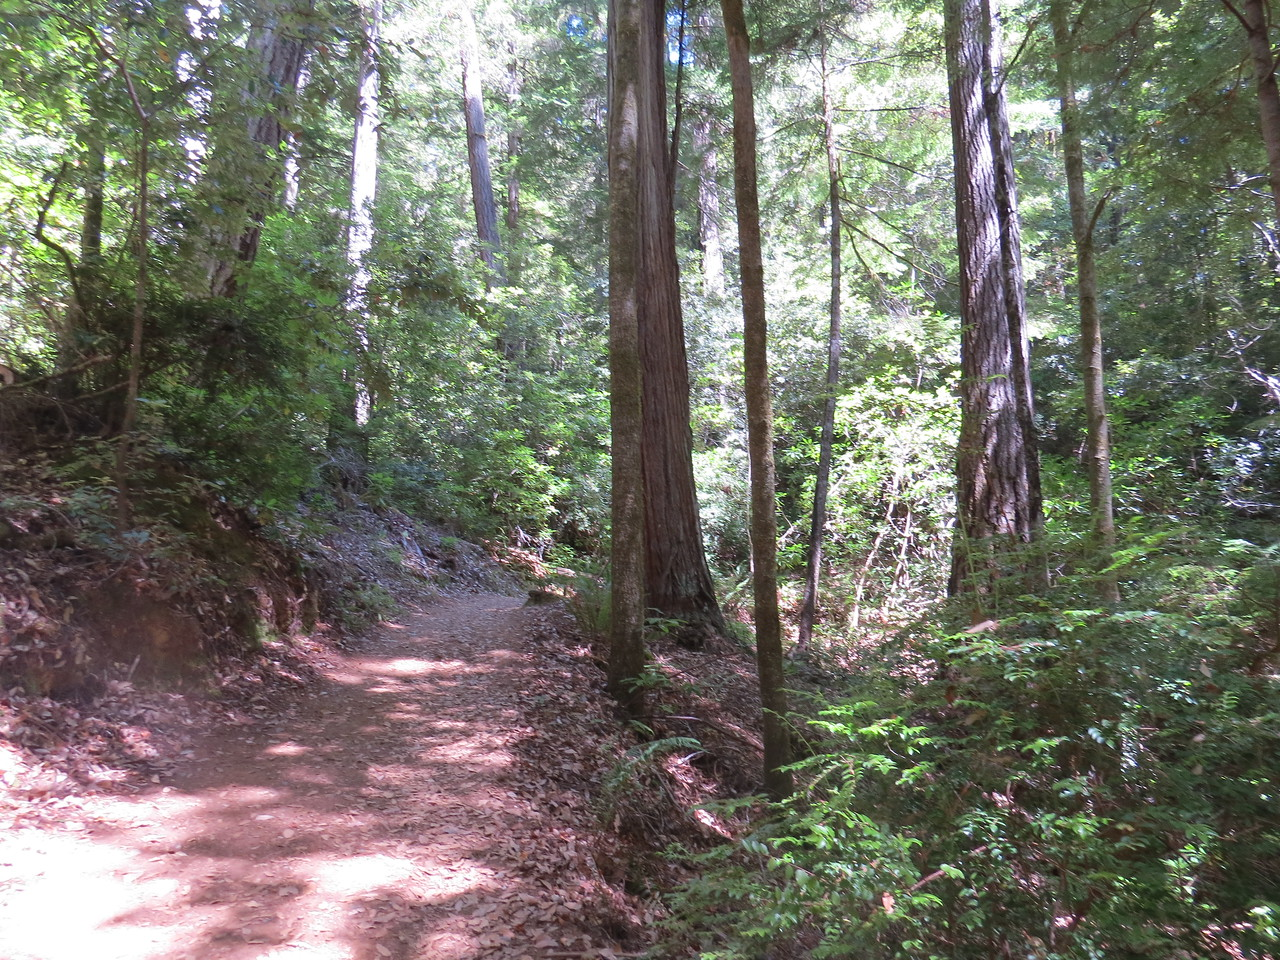 Looking back up the trail to the Tall Trees Grove.